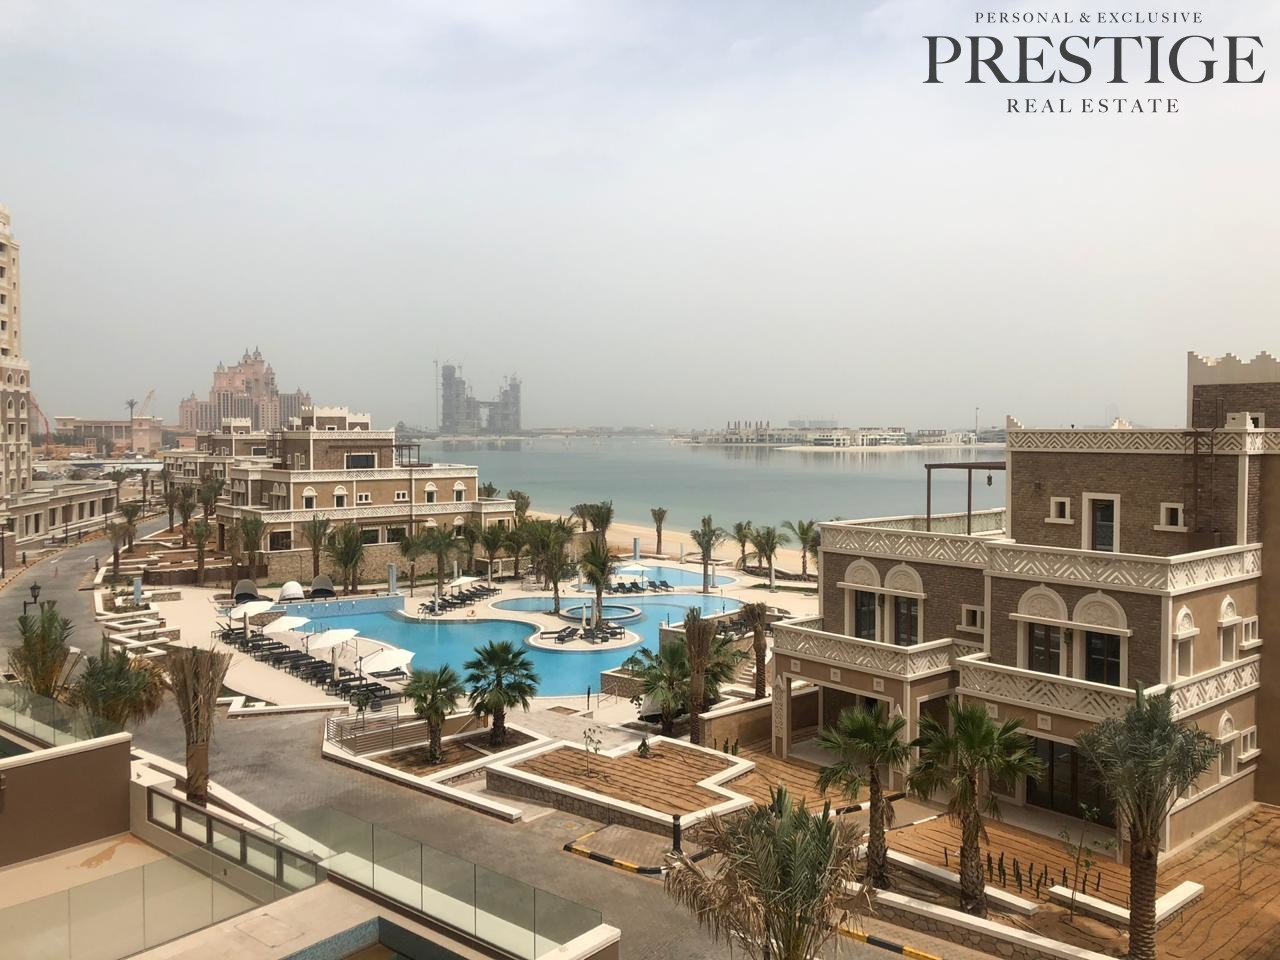 spectacular-l-sea-view-l-3-beds-maid-l-brand-new